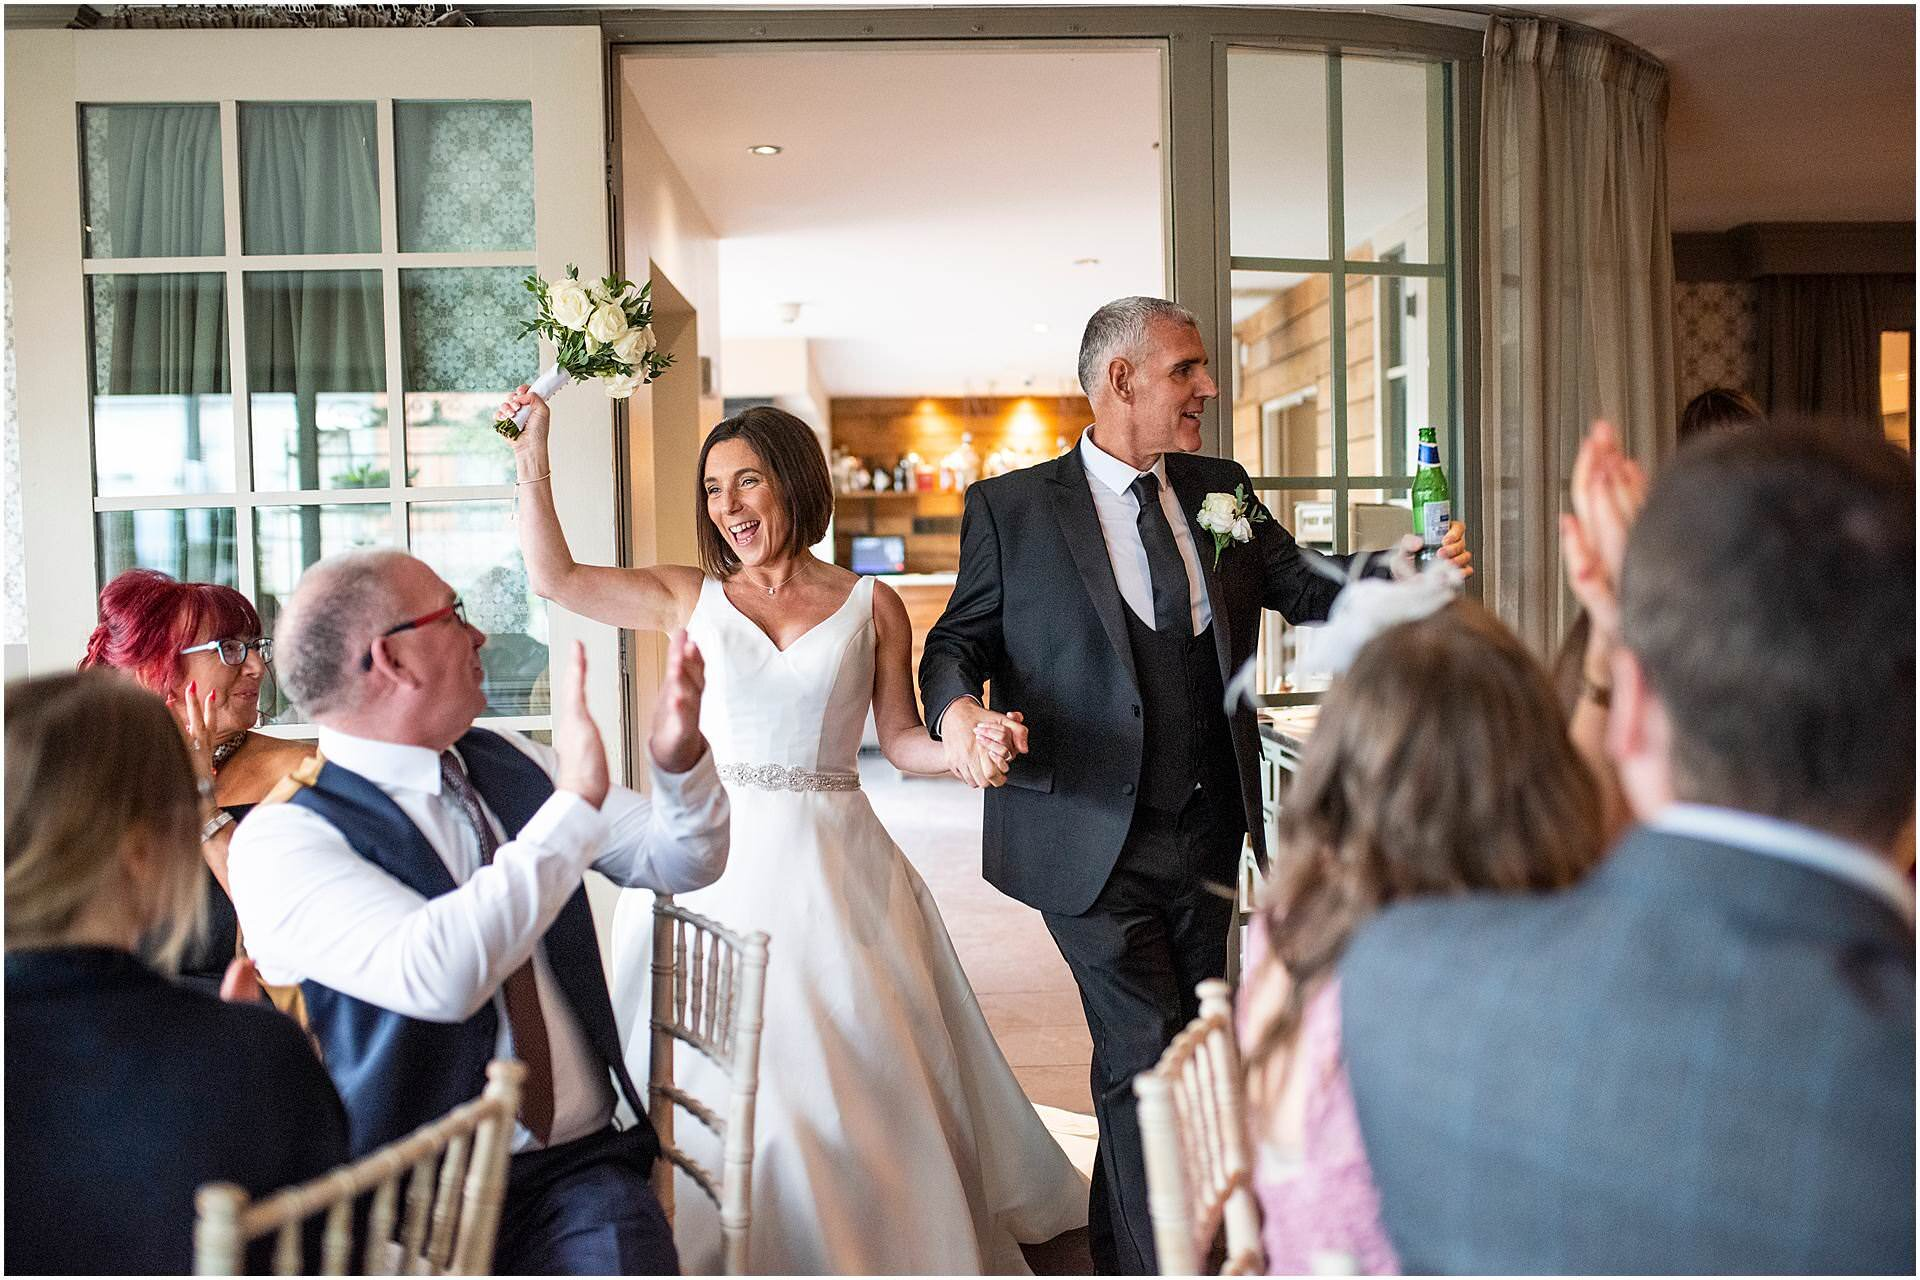 wedding_packages_with_sarah_bee_photography_manchester_wedding_photographer_lancashire_wedding_photographer, great_john_street_hotel_manchester_2433.jpg